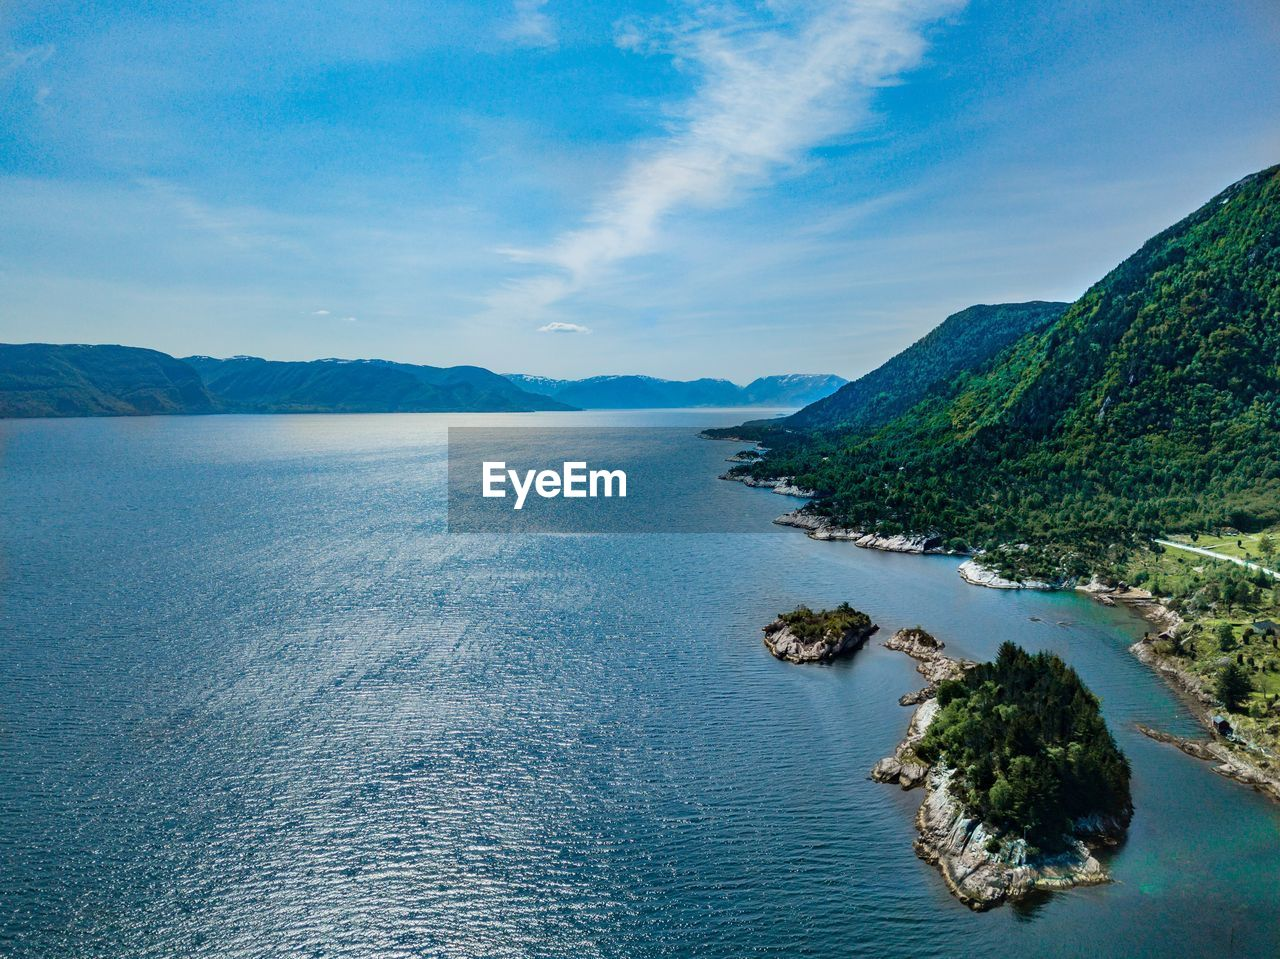 water, scenics - nature, beauty in nature, sky, tranquil scene, sea, tranquility, mountain, cloud - sky, no people, idyllic, nature, day, blue, tree, waterfront, plant, non-urban scene, outdoors, bay